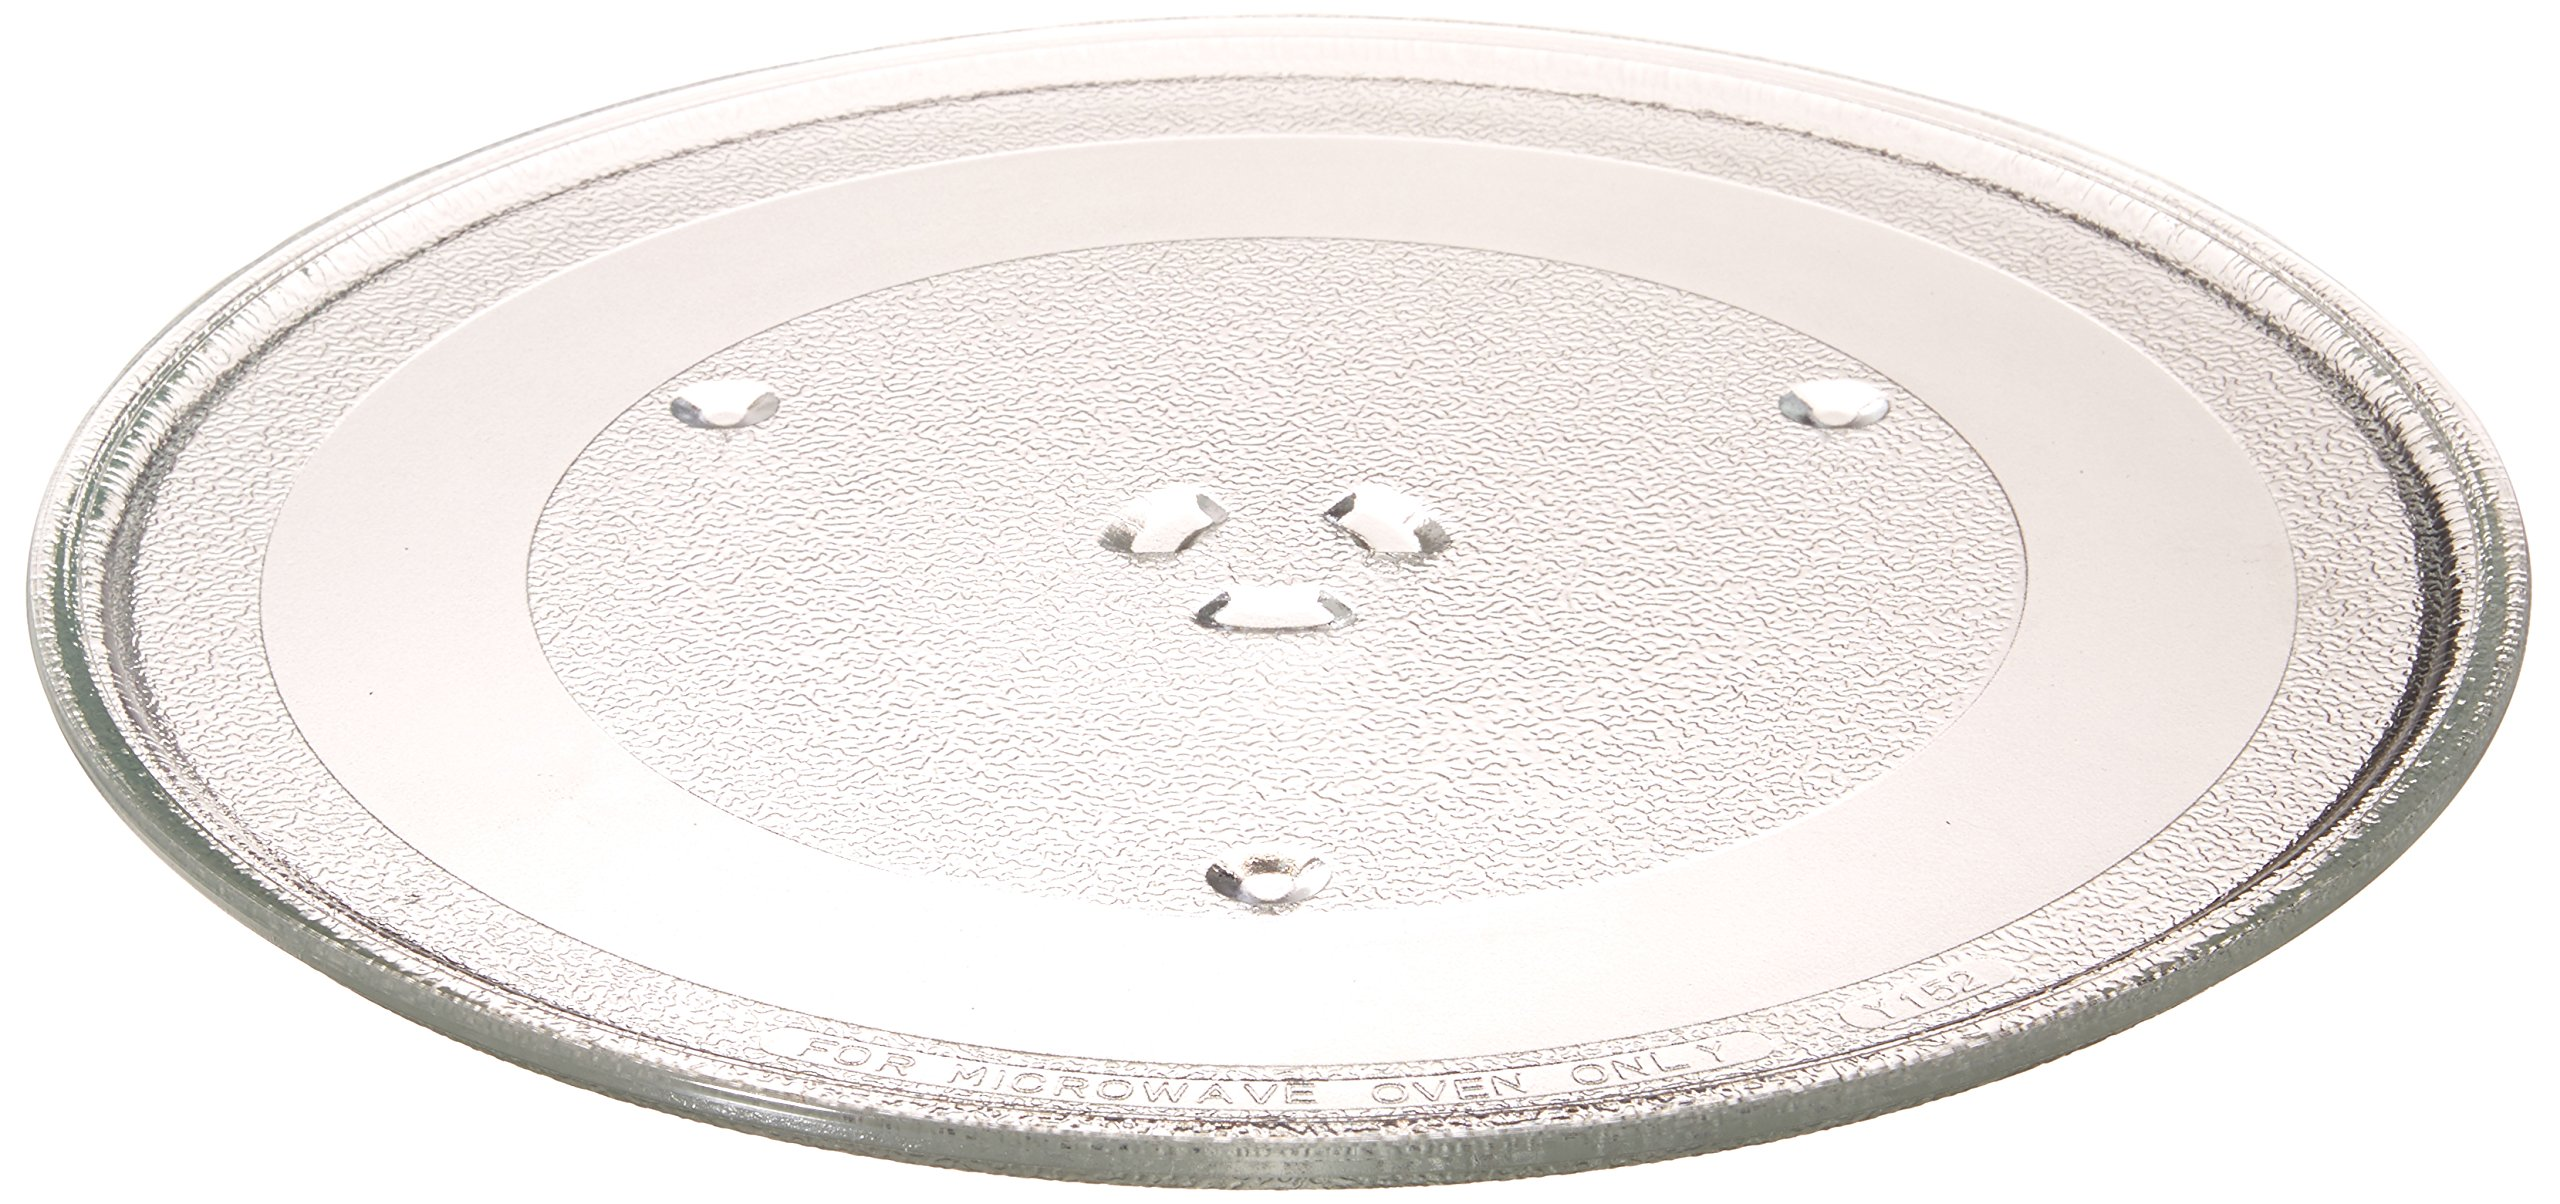 General Electric Microwave Glass Turntable Plate / Tray 13 1/2 '' WB39X10032